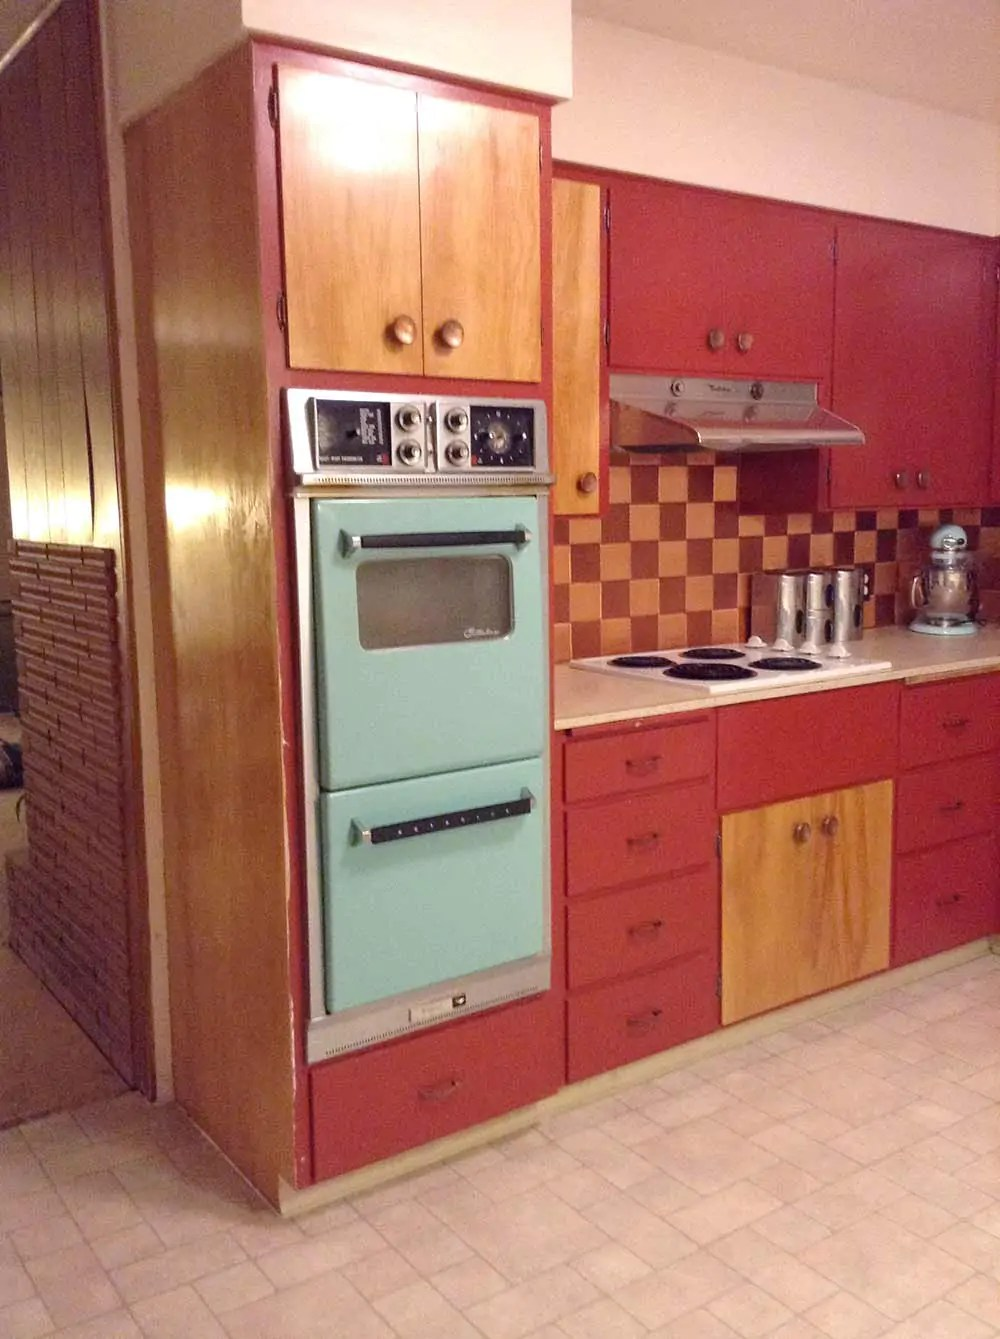 Flooring And Countertops For Shannans 1950s Kitchen Retro Renovation